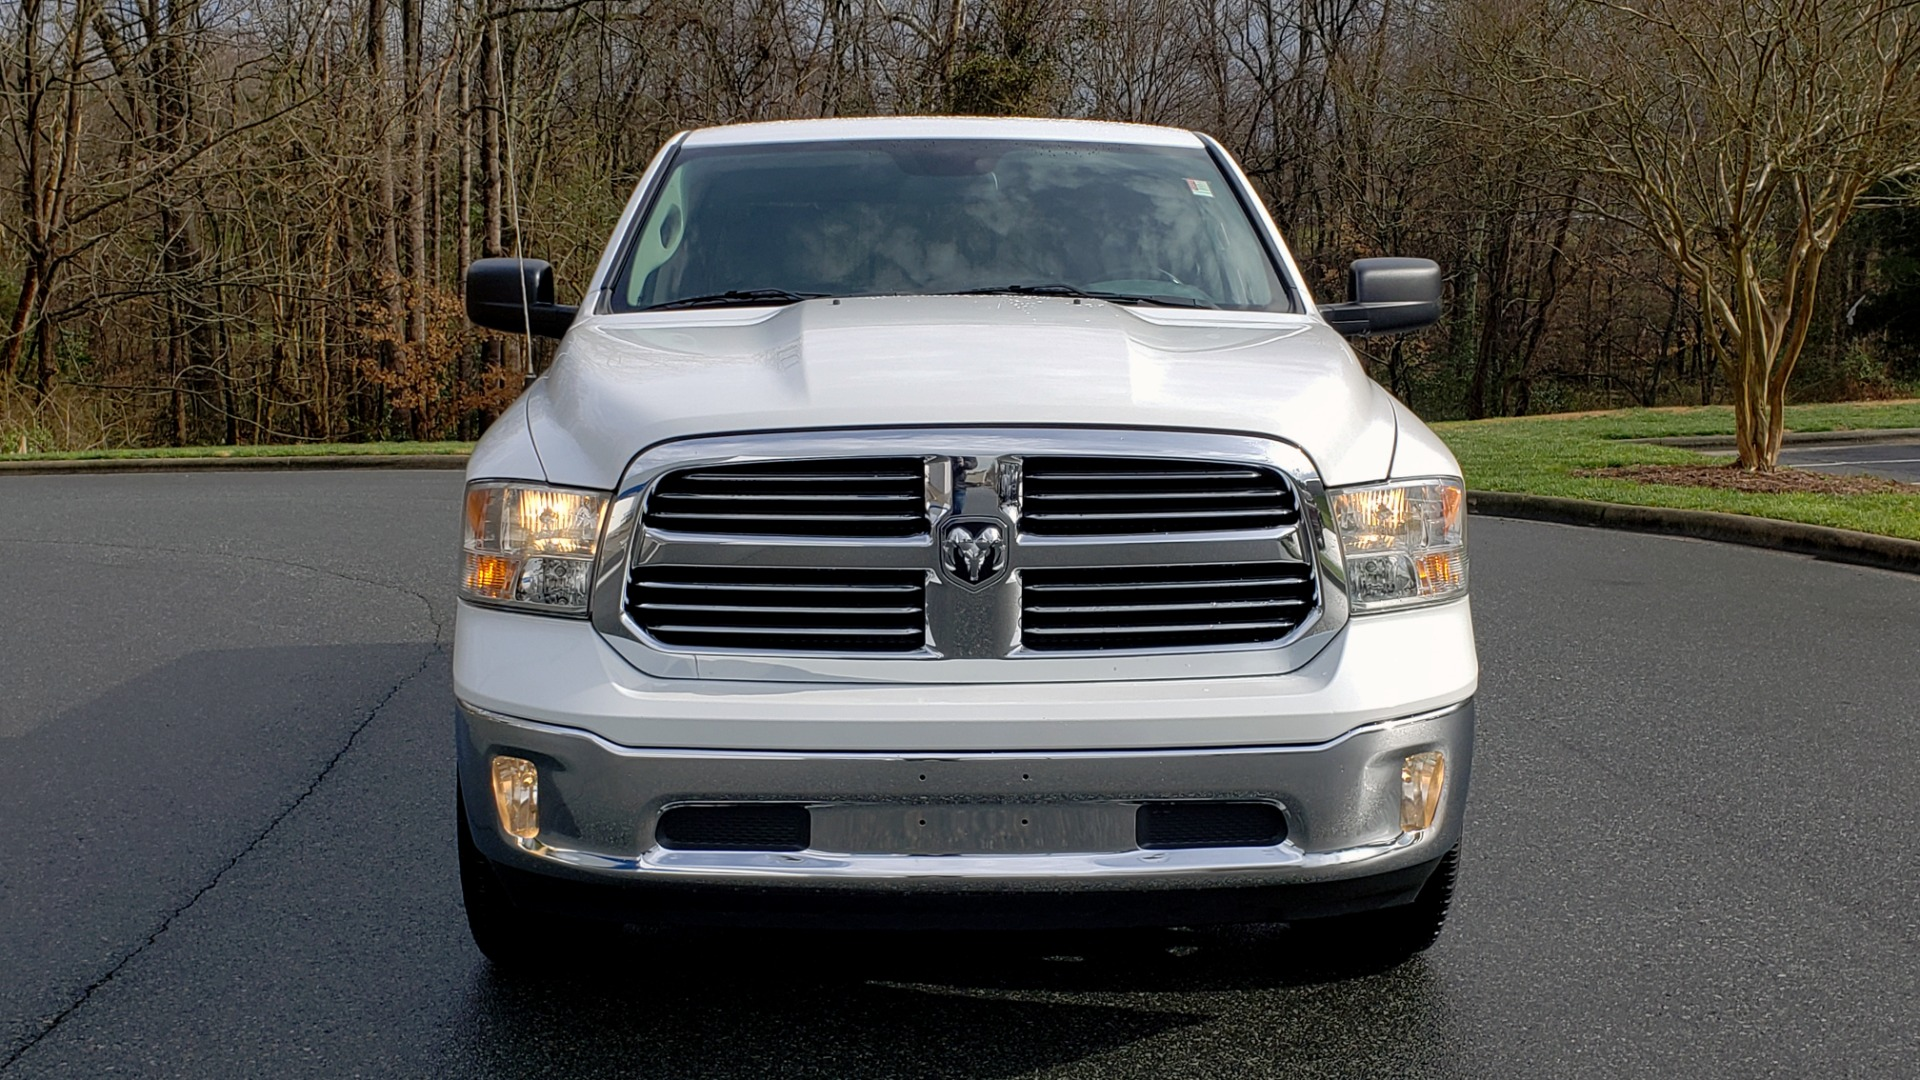 Used 2016 Ram 1500 BIG HORN QUAD CAB 4X4 / 5.7L HEMI V8 / 8-SPD AUTO for sale Sold at Formula Imports in Charlotte NC 28227 18